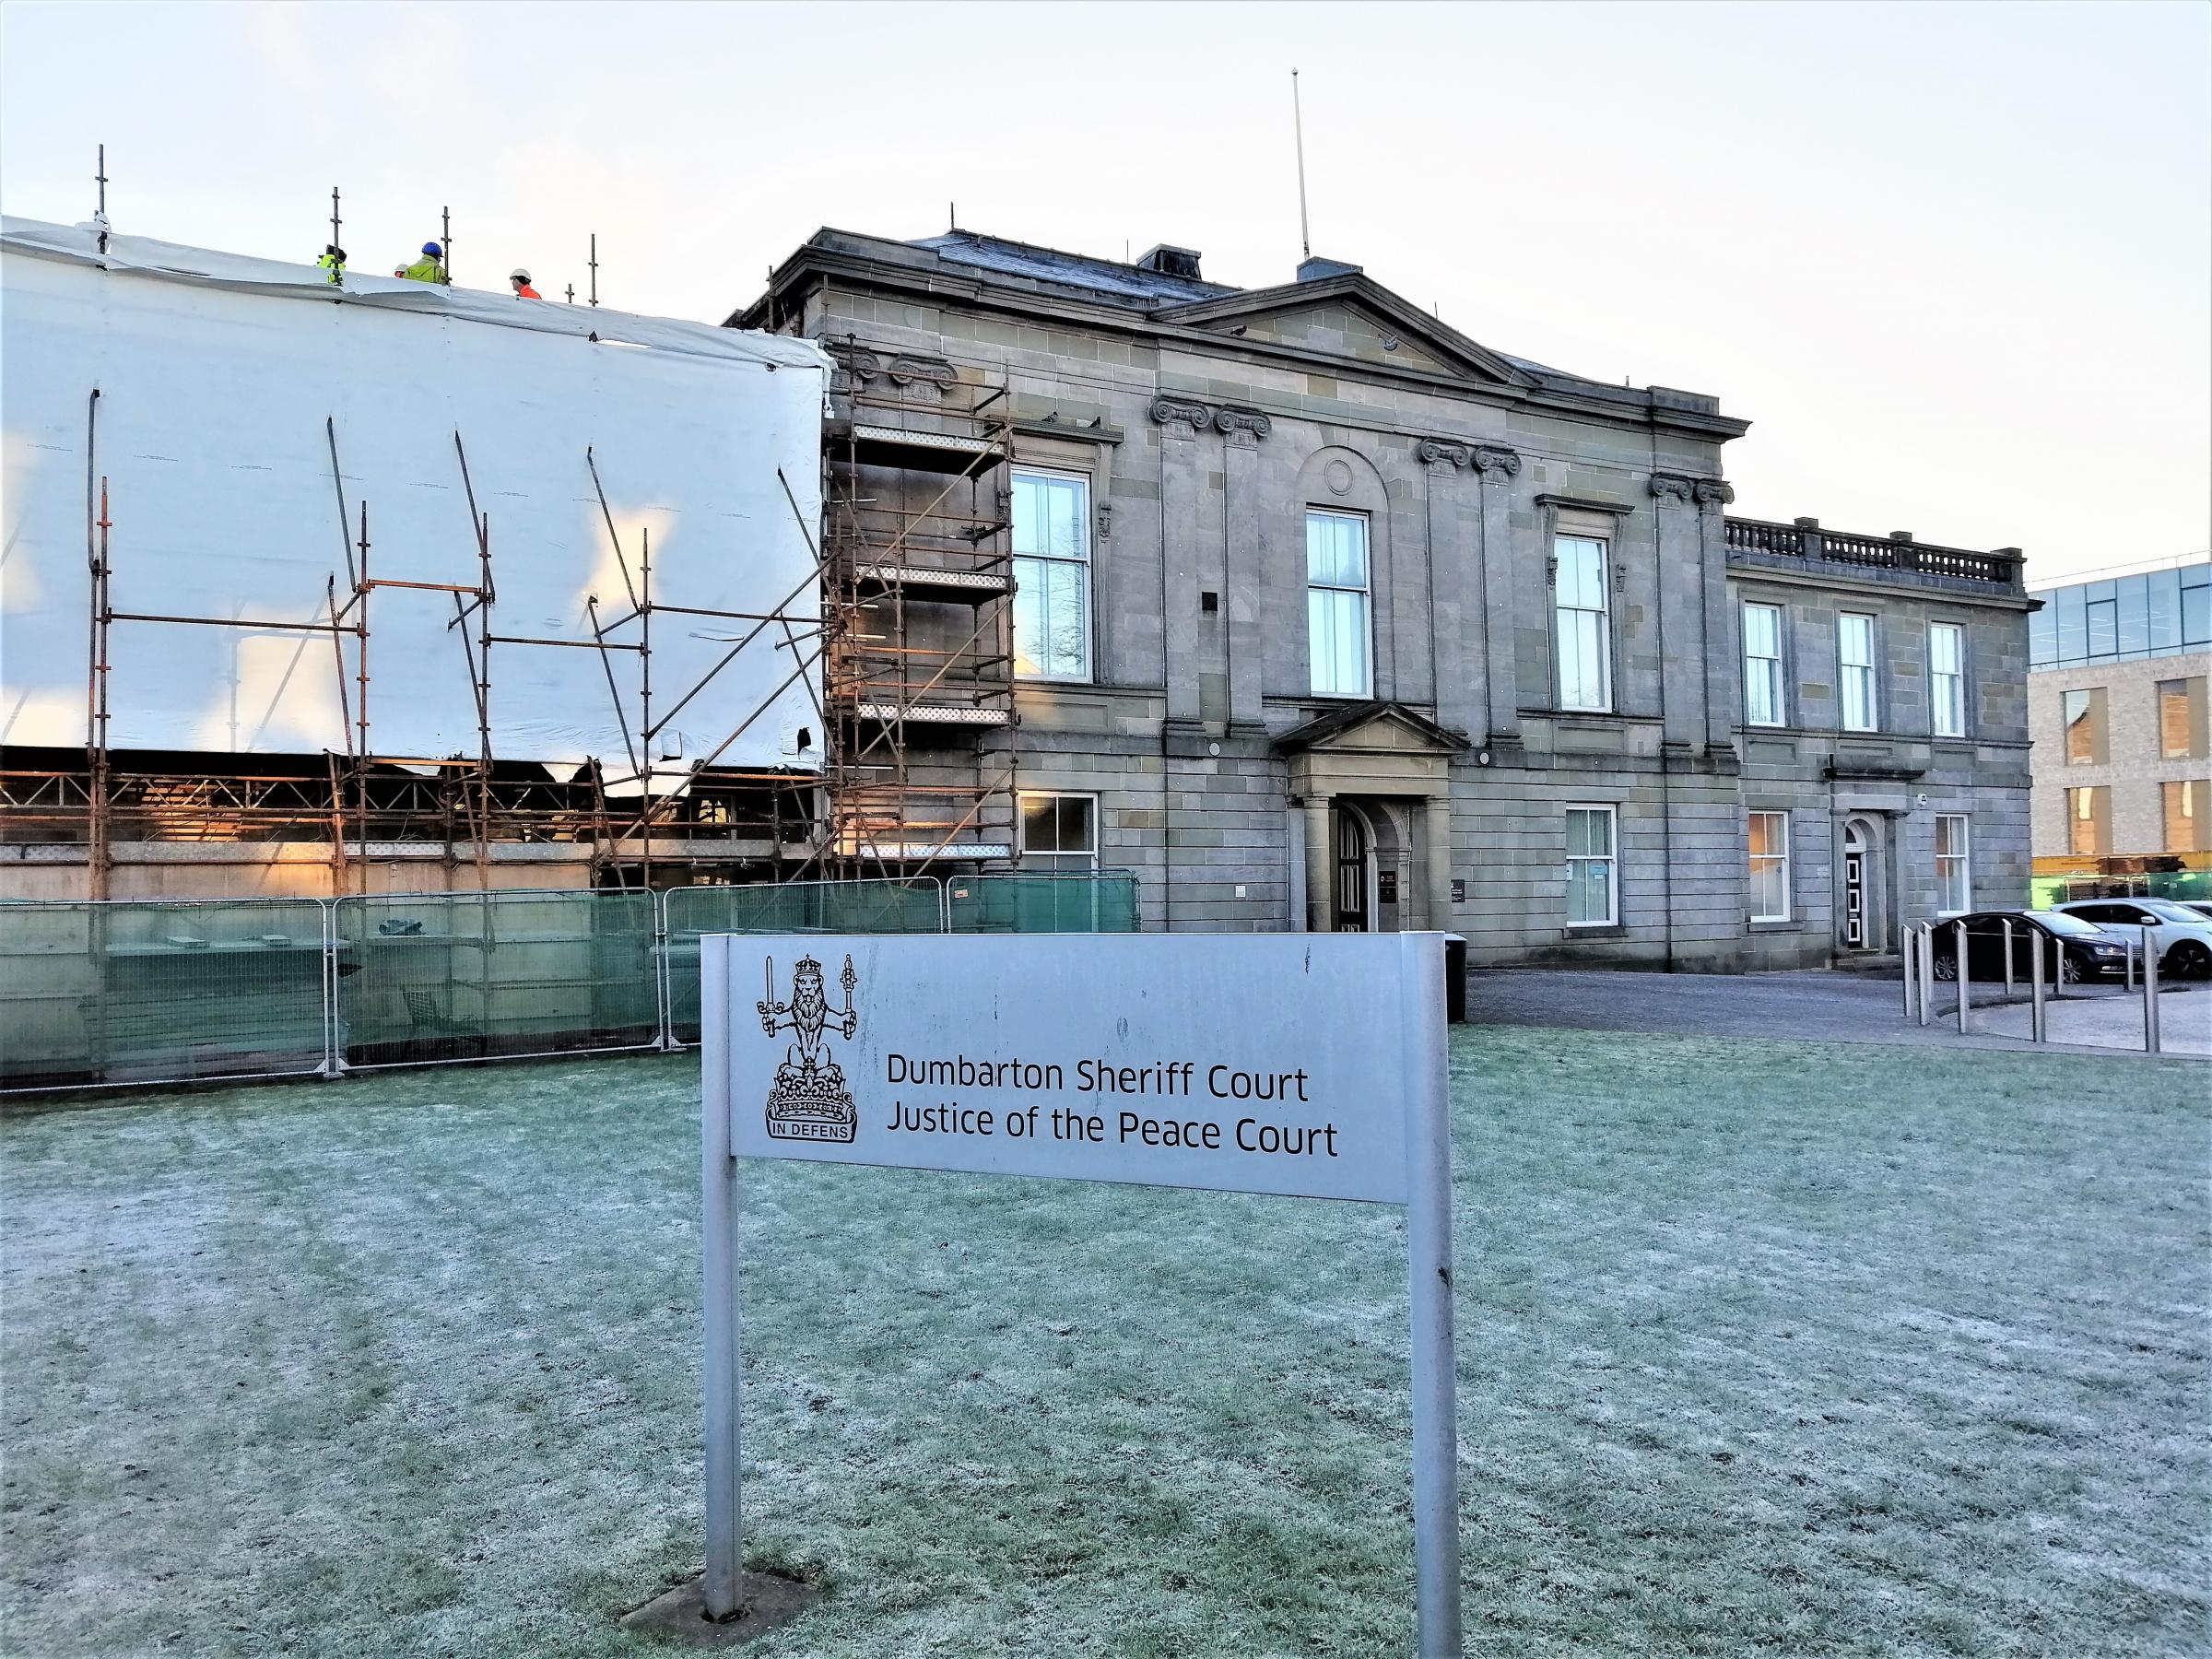 Dumbarton Sheriff Court, where Lee McCallum was sentenced on February 1